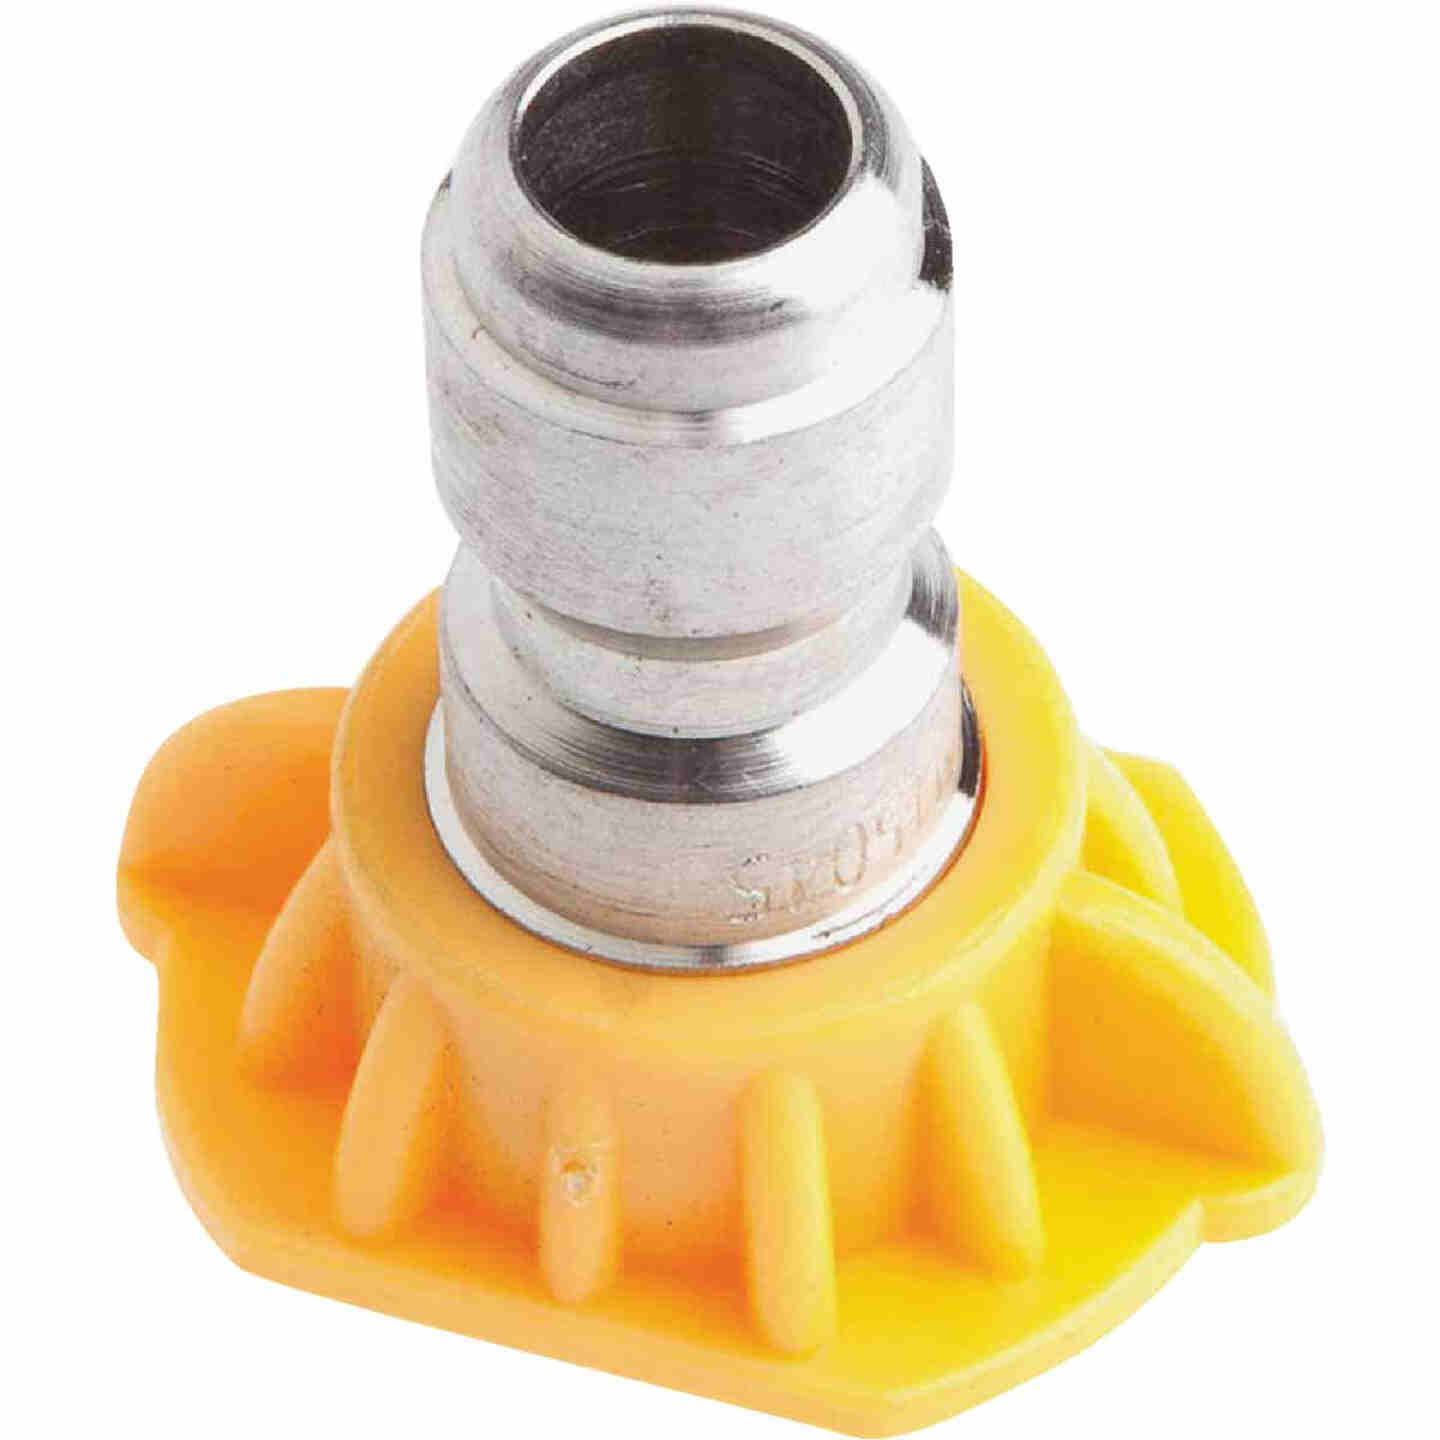 Forney Quick Connect 4.5mm 15 Deg. Yellow Pressure Washer Spray Tip Image 3